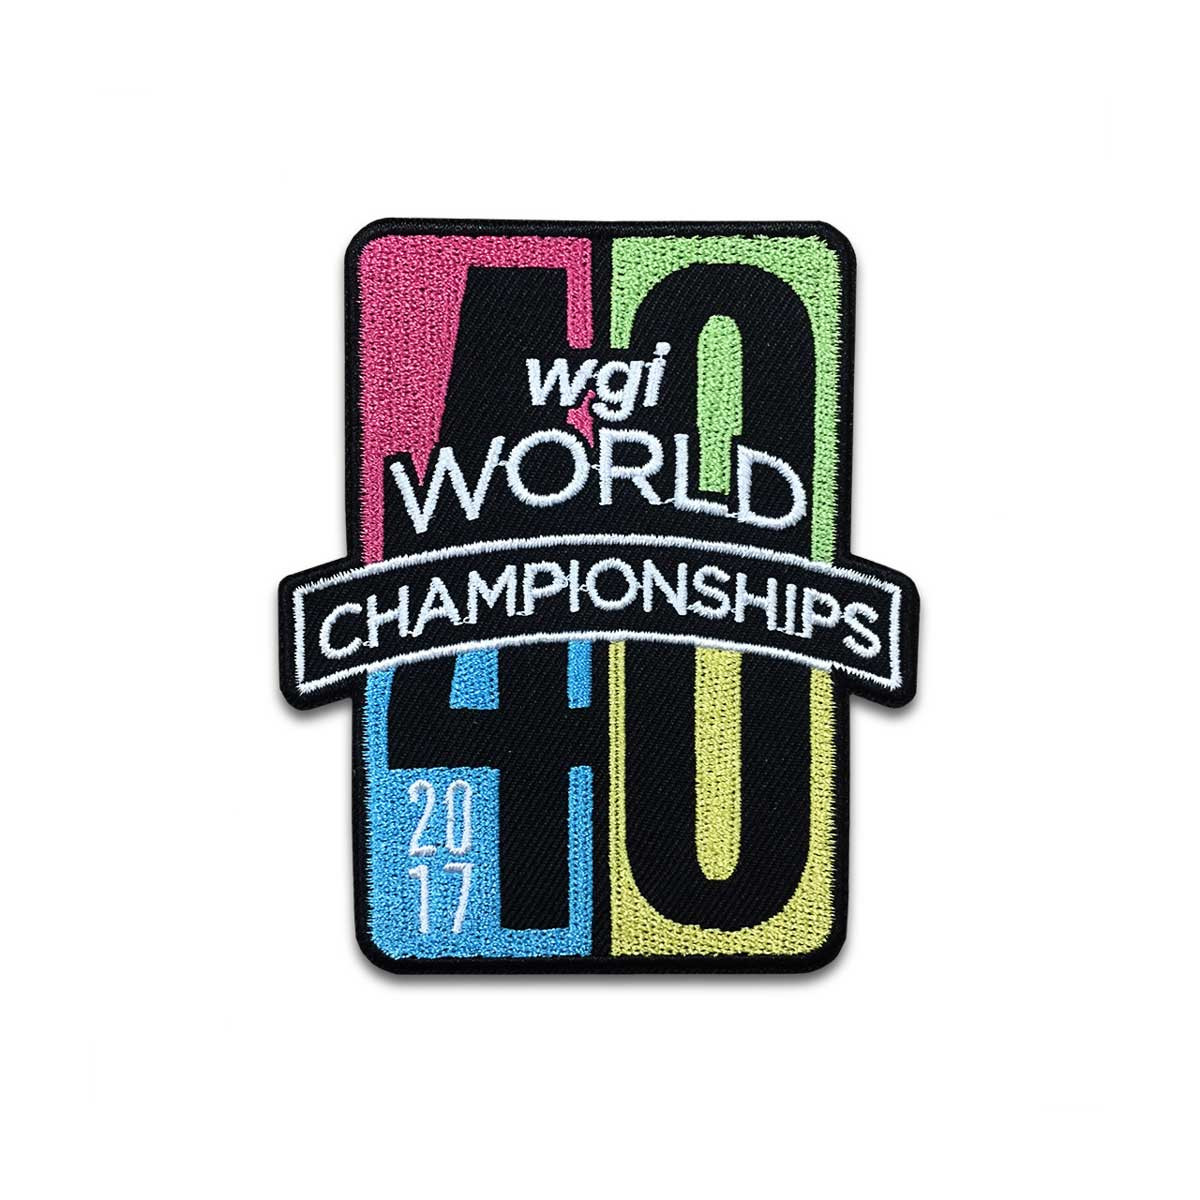 2017 WGI World Championship Patch